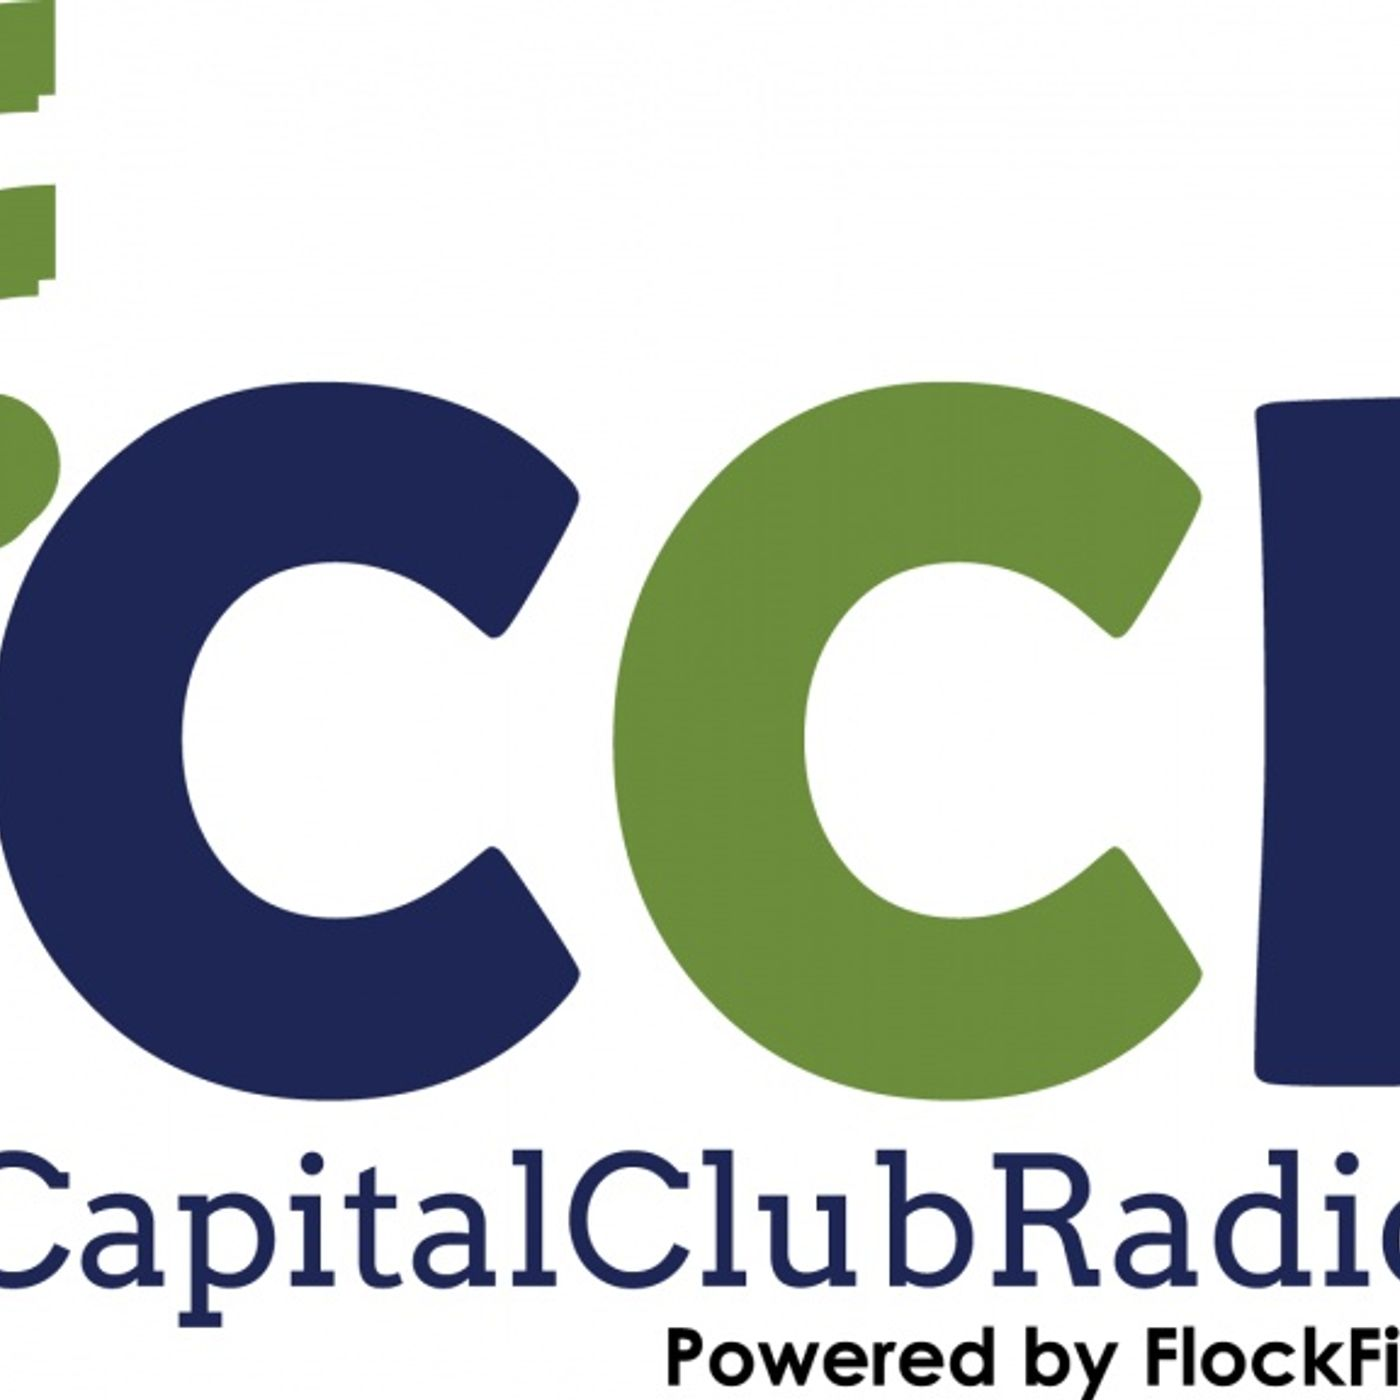 Rejecting Retirement and Creating Community in the Cloud Carl Harkleroad with Imagine.Cloud on Capital Club Radio